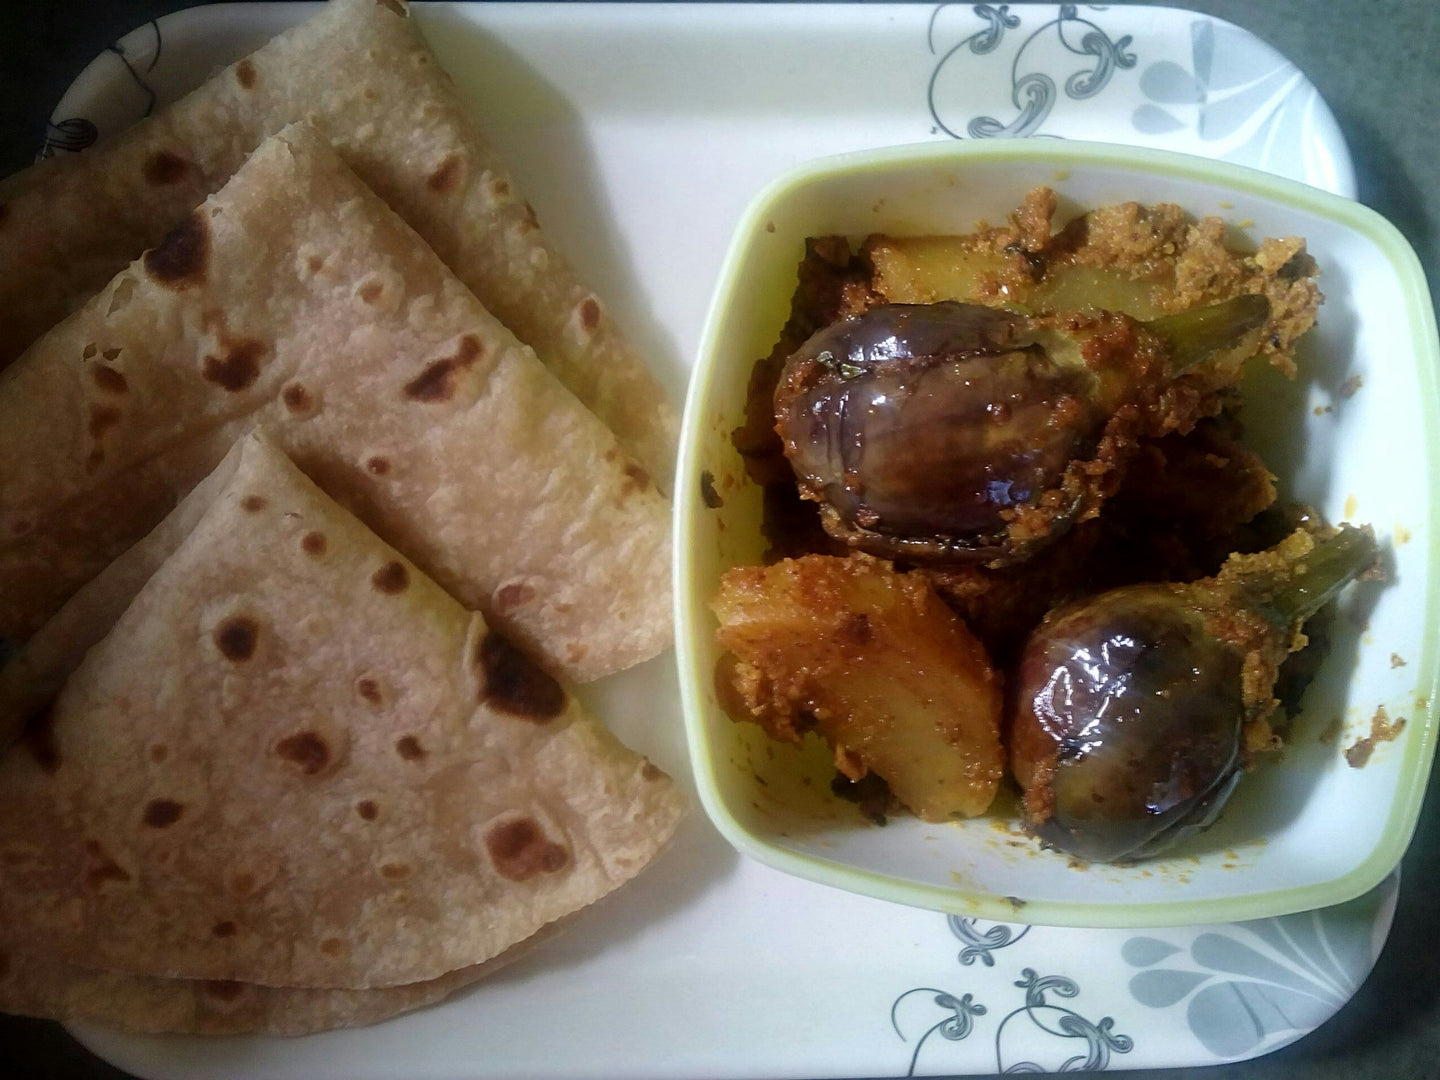 Stuffed Baingan Aloo Sabji with Chapati (5), Pickle, Papad & Buttermilk